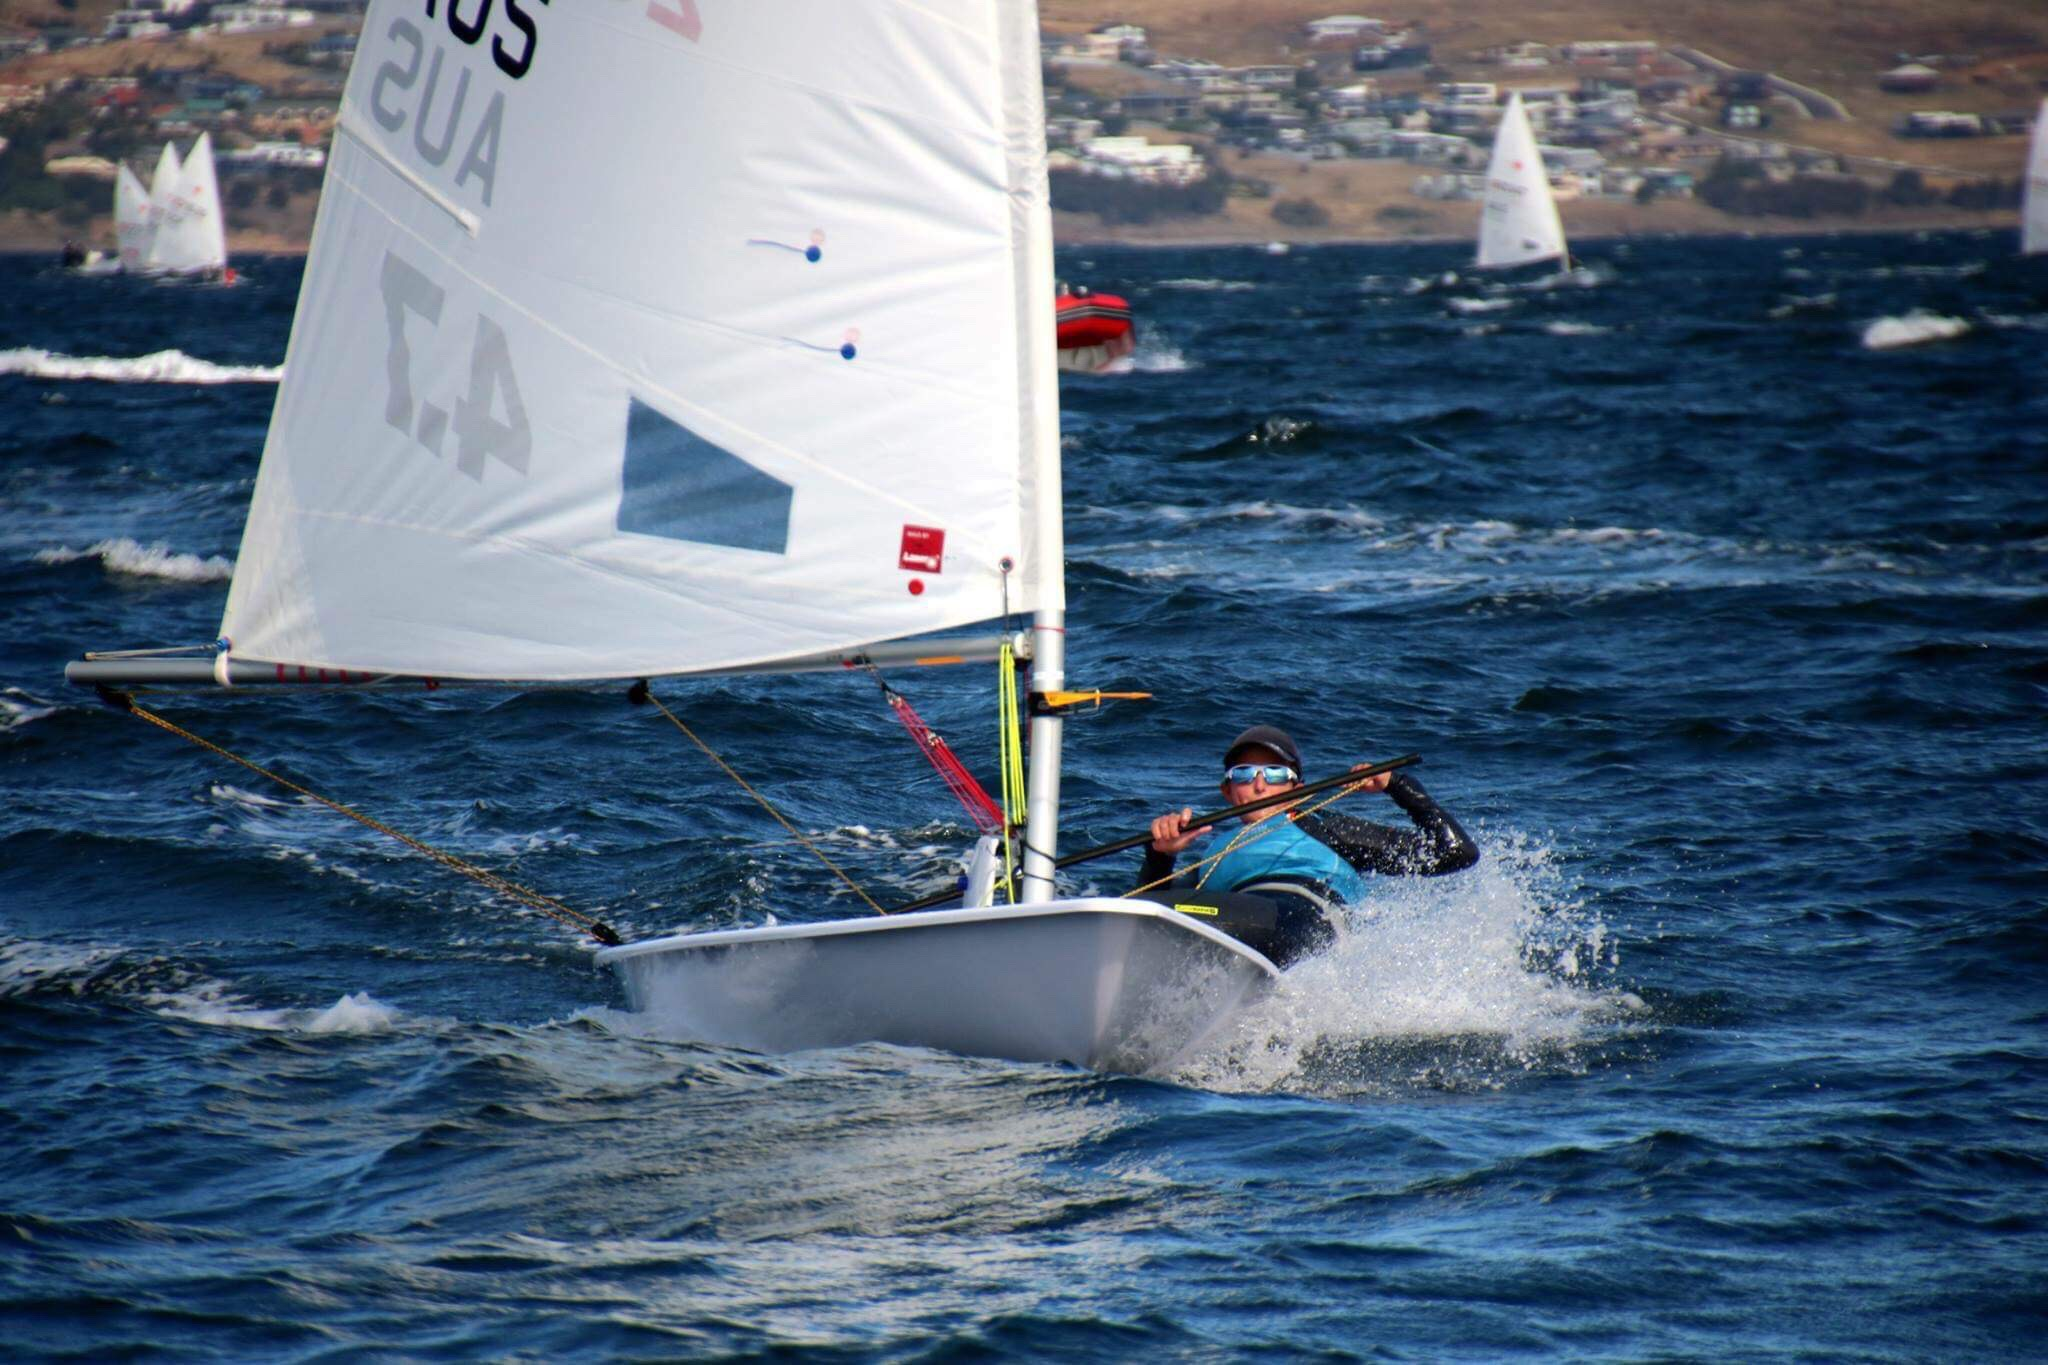 Evie Saunders shows how to keep the boat flat in high winds. From the Nationals earlier in the year.